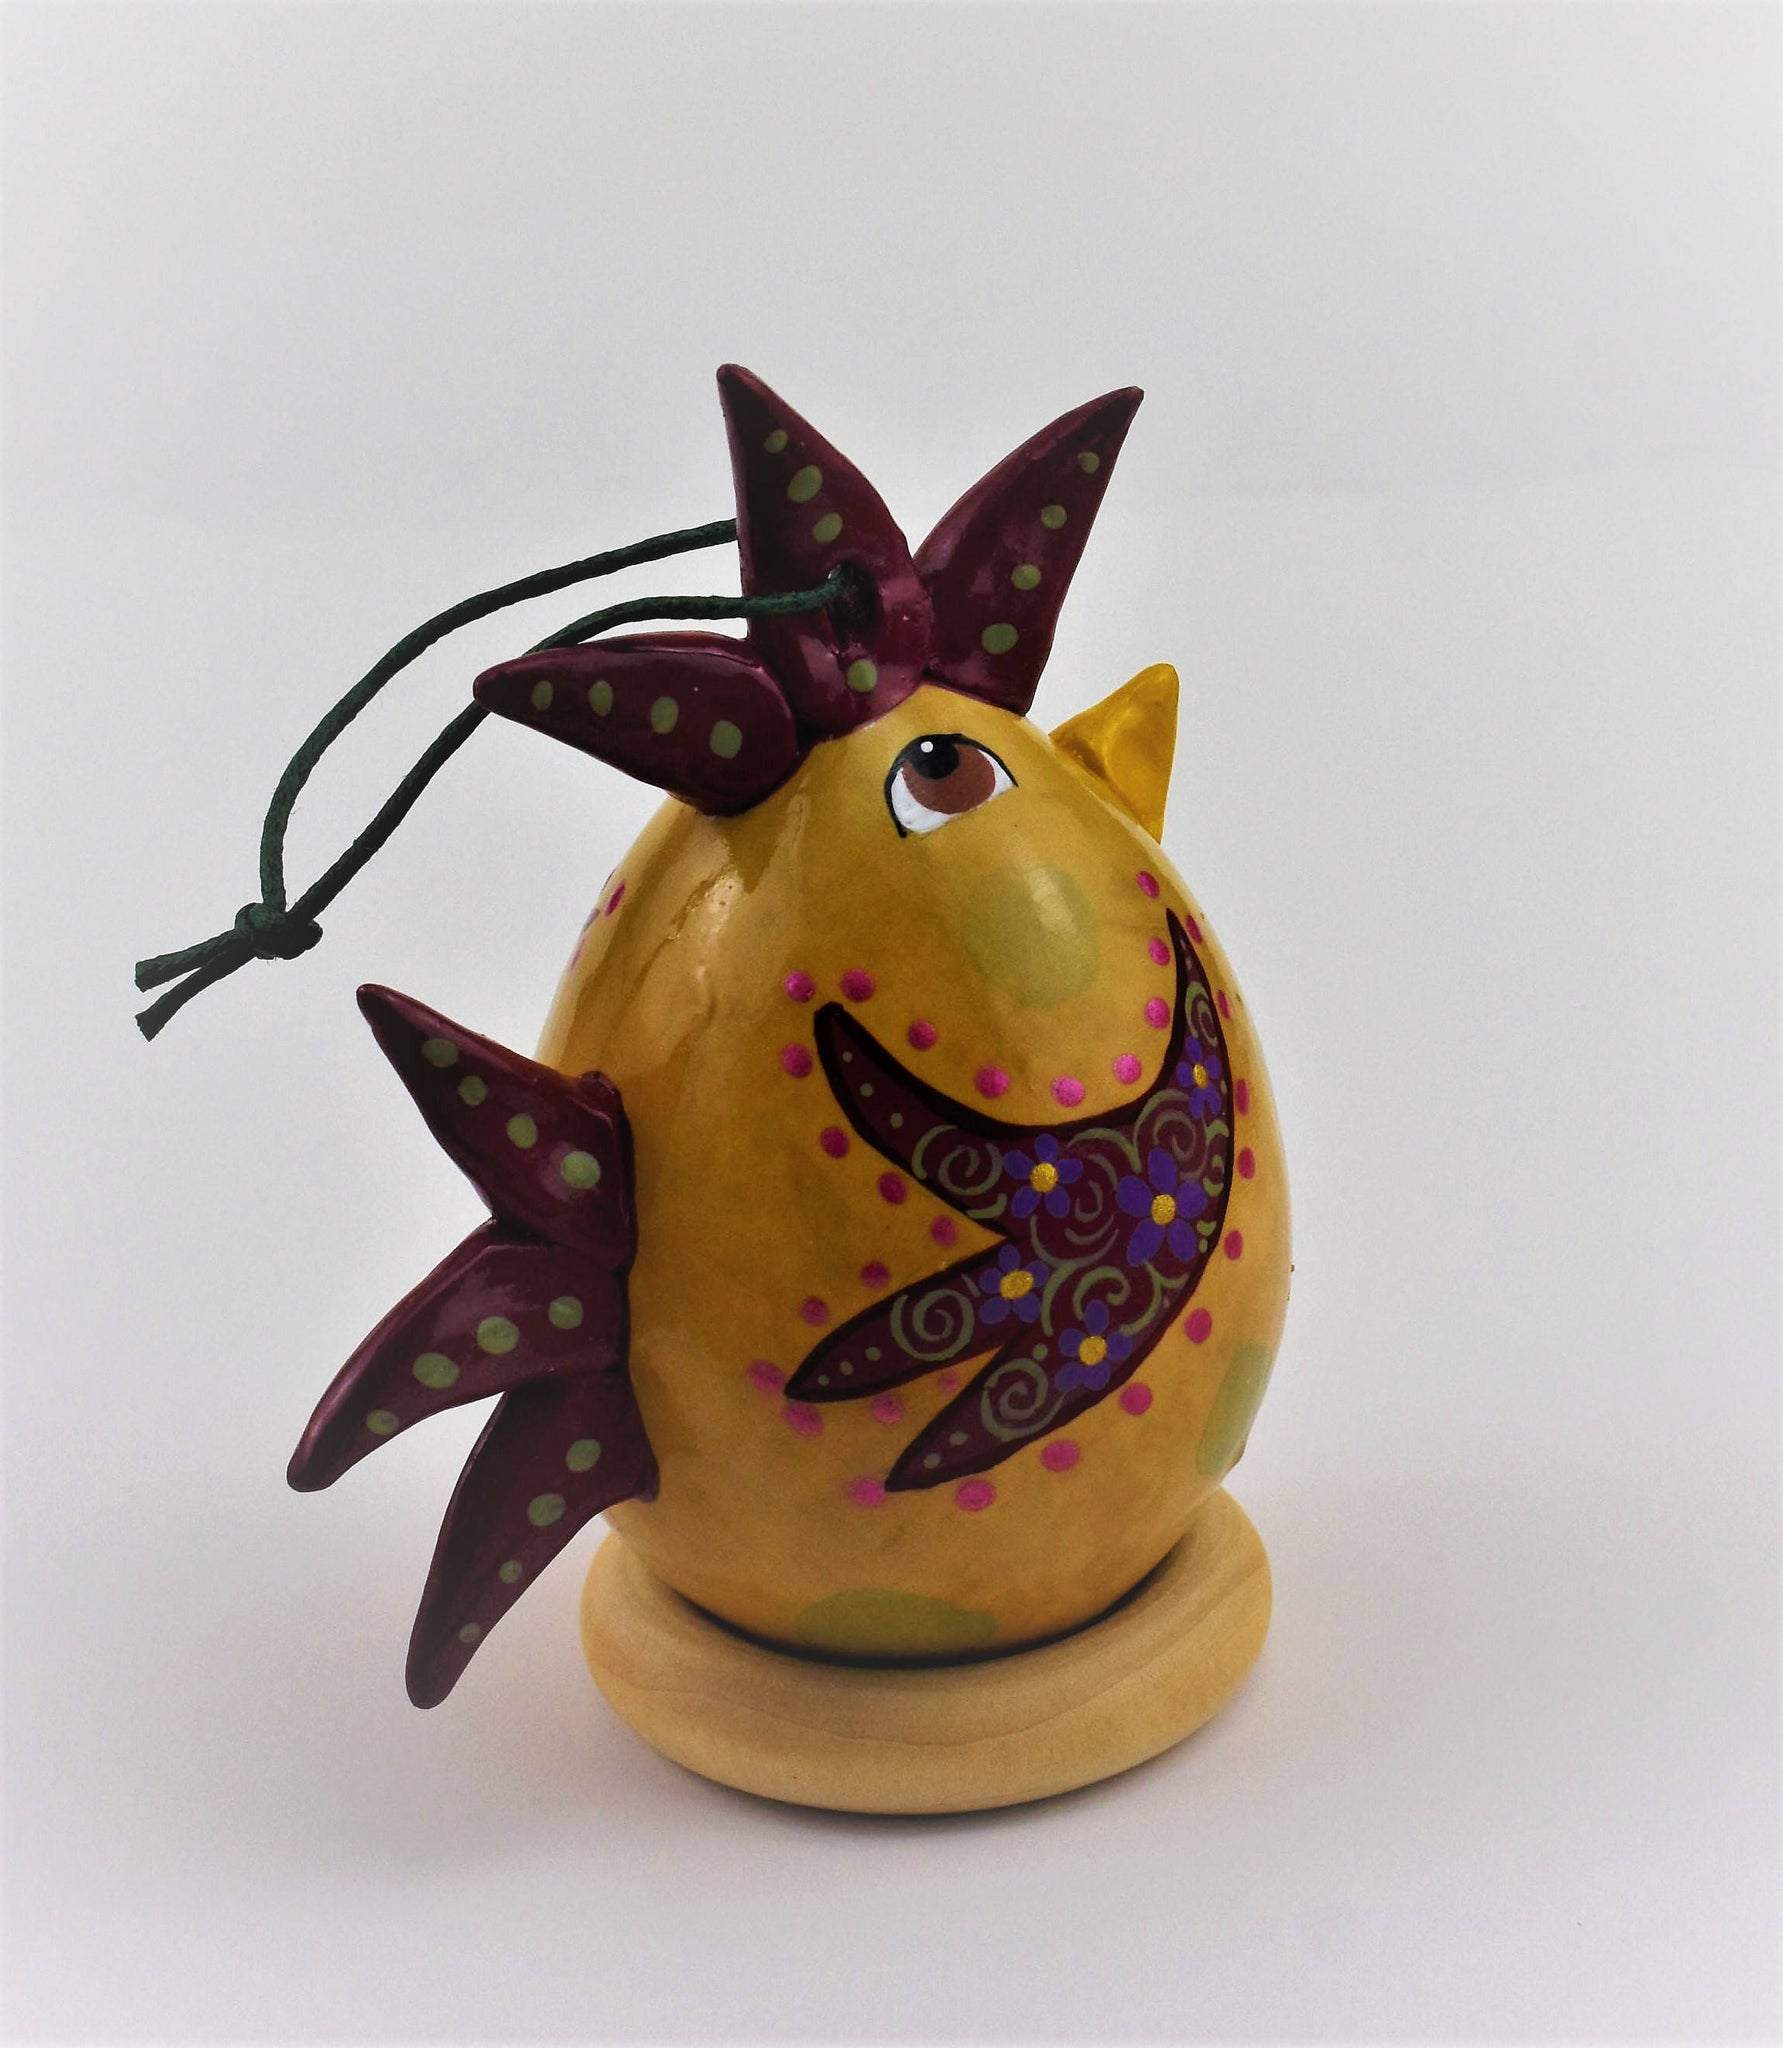 Special Edition Chicken Gourd Ornament, Fun Gift - Gourdaments